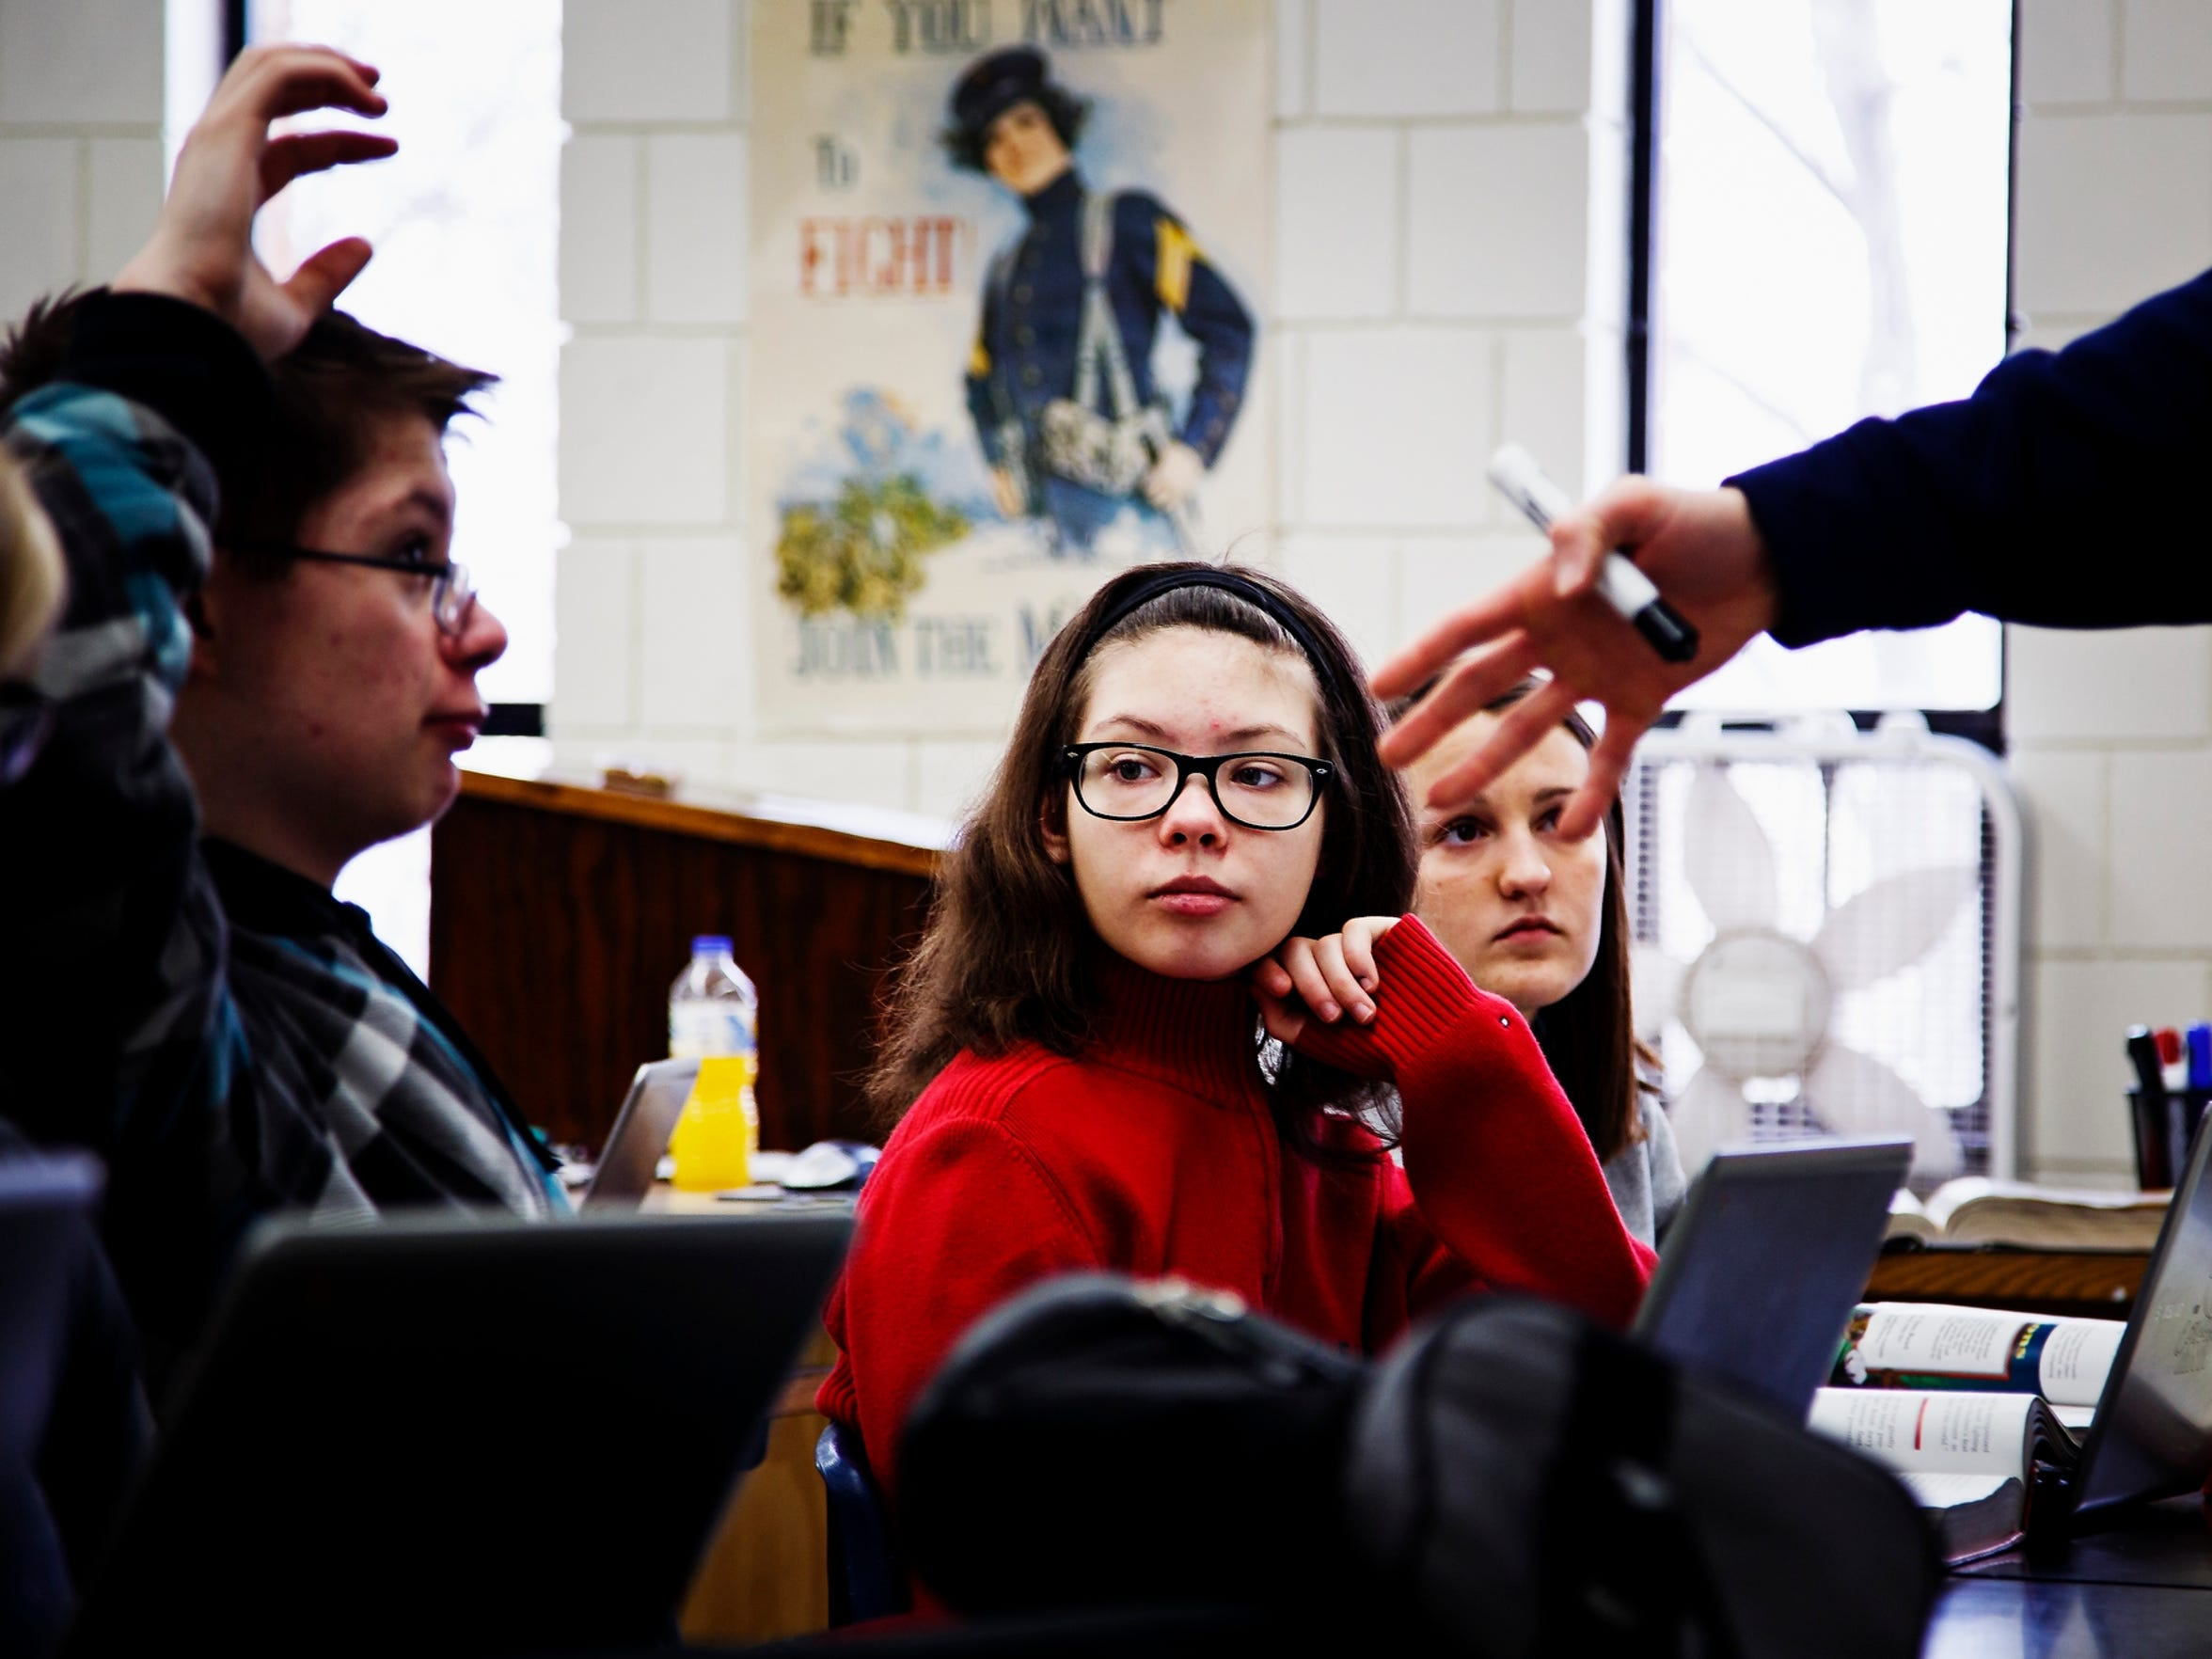 Alexis Myers, 15, listens during class at Manson Northwest